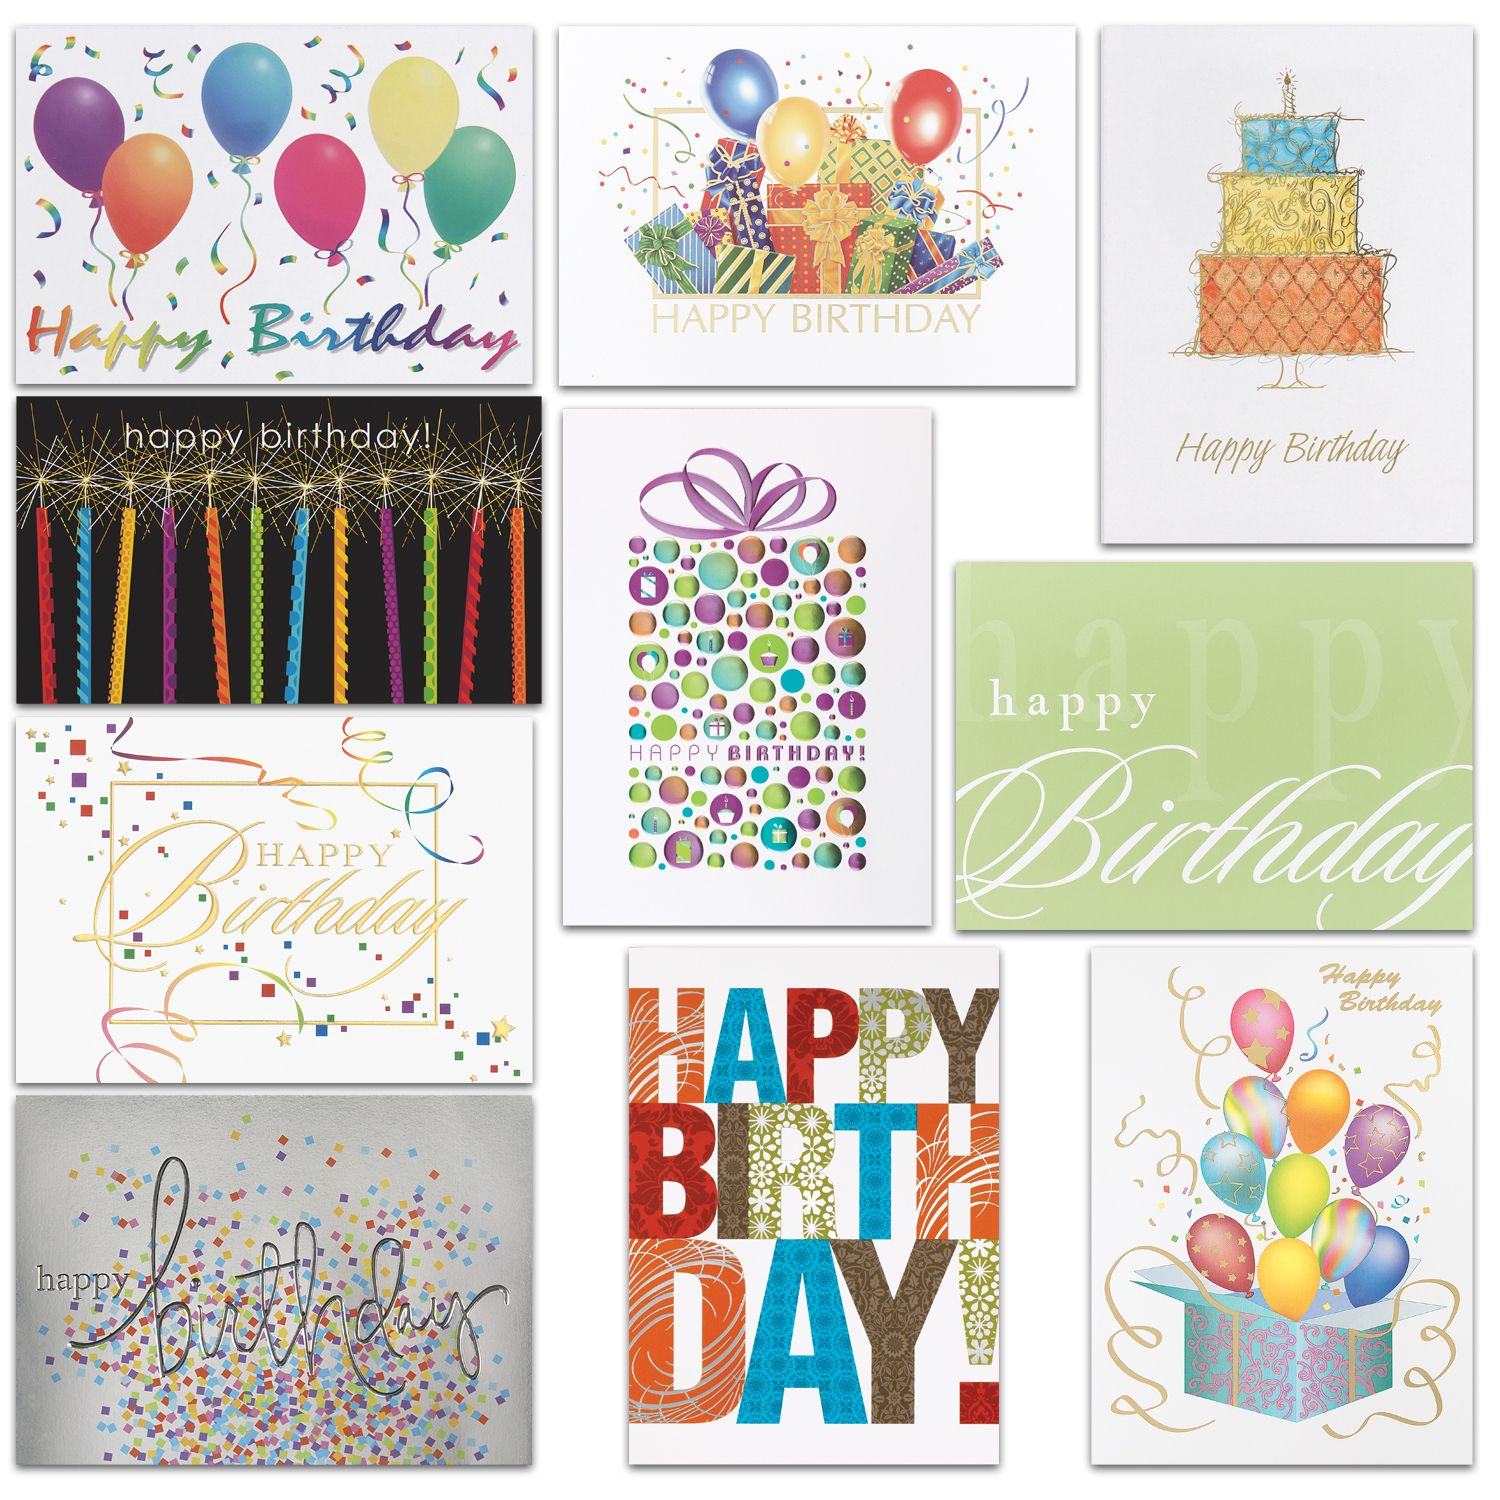 birthday assortment  100 cards with images  birthday